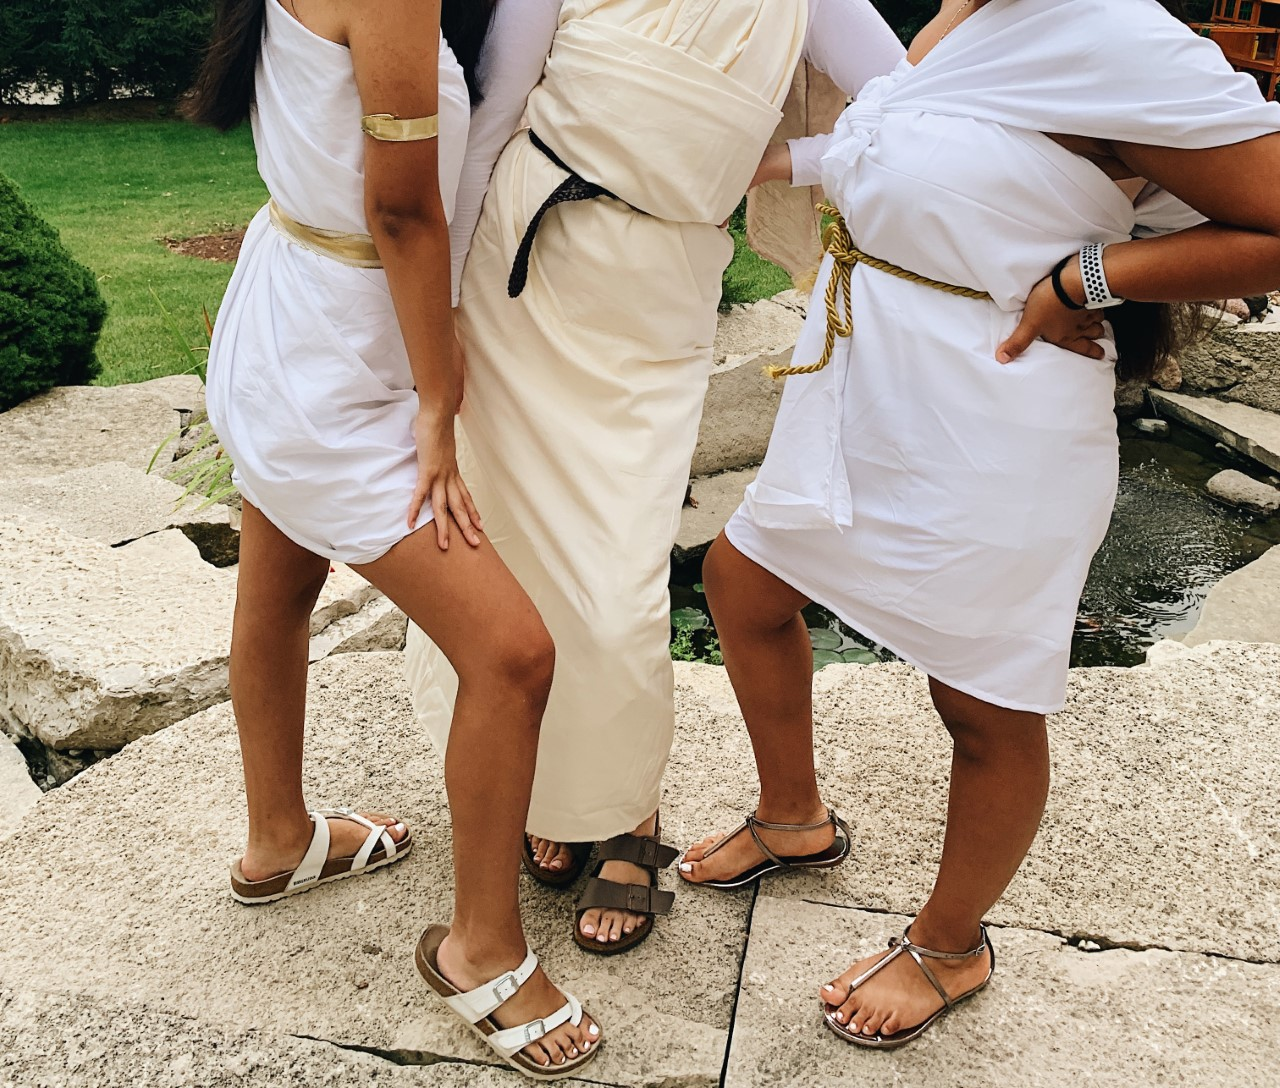 For toga day, togas are only meant to be worn by seniors.